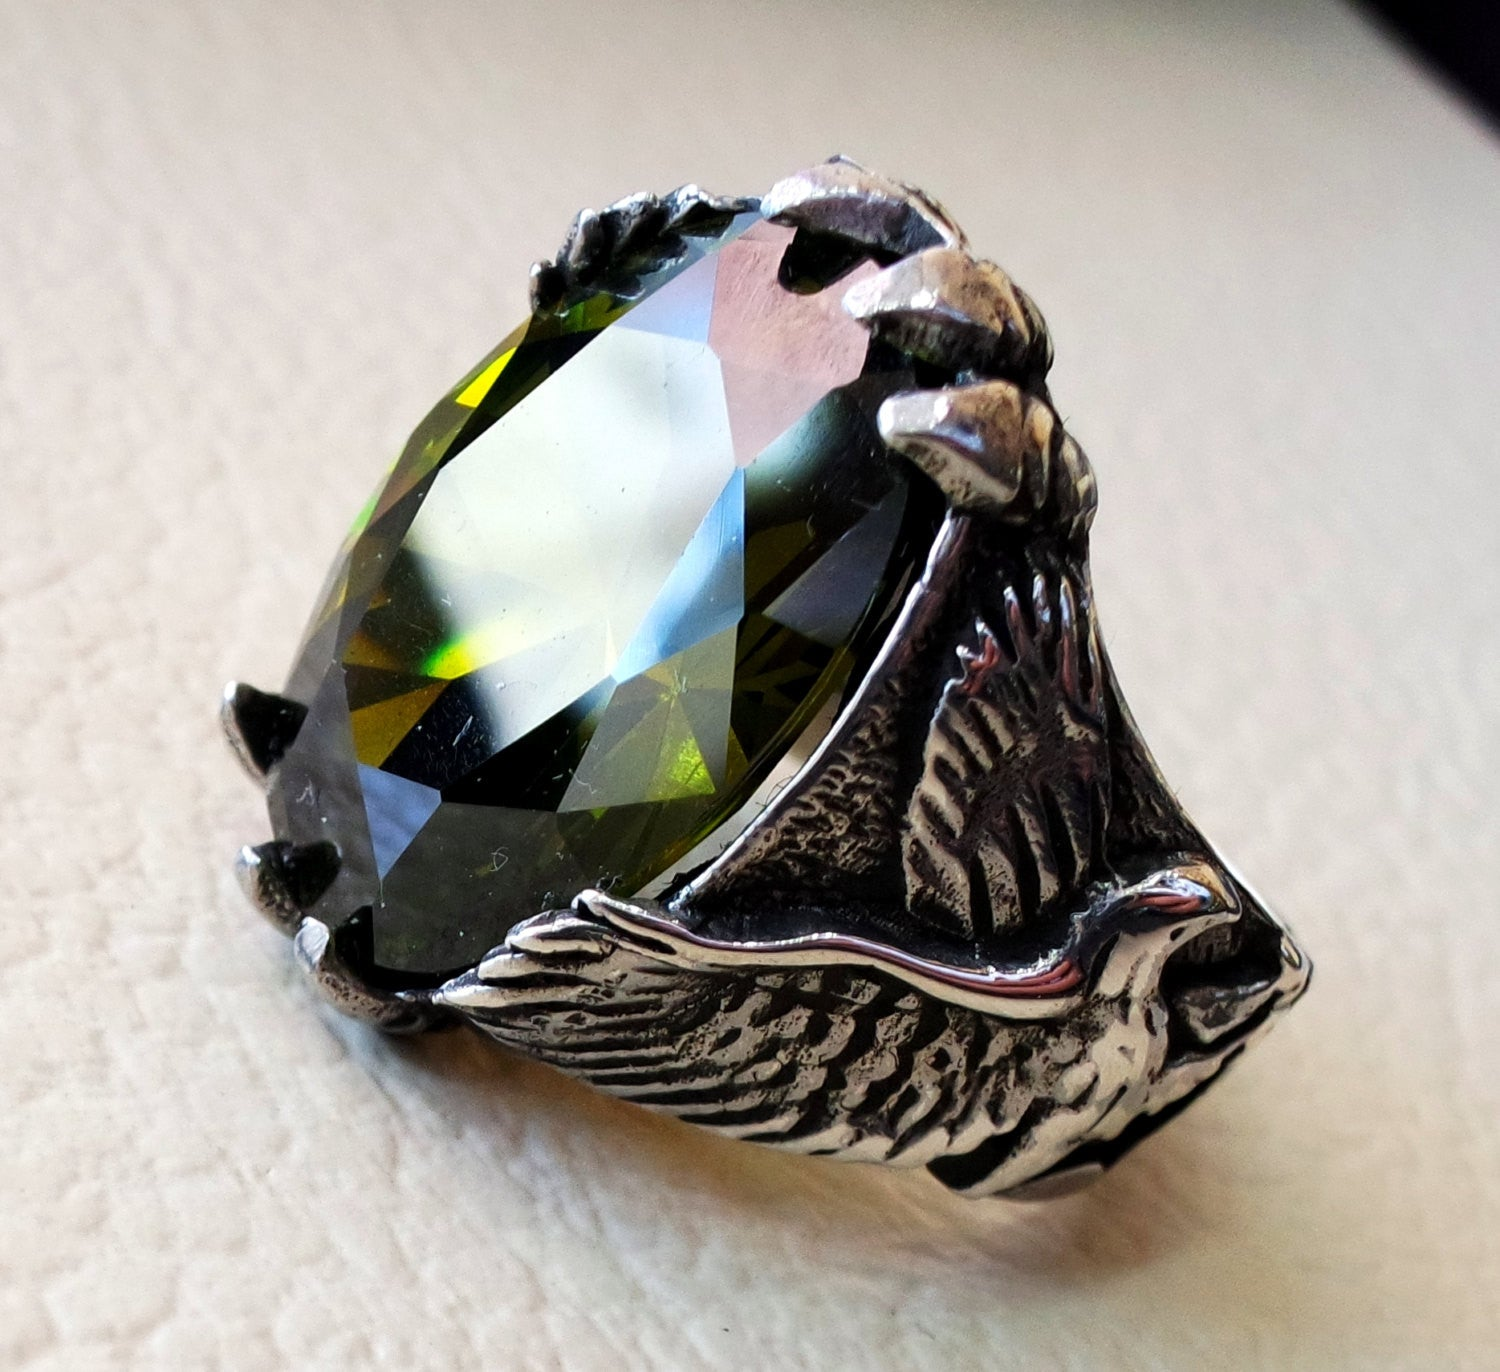 eagle falcon man ring sterling silver 925 oval vivid olive green cubic zircon stone all sizes jewelry gem identical to genuine high quality